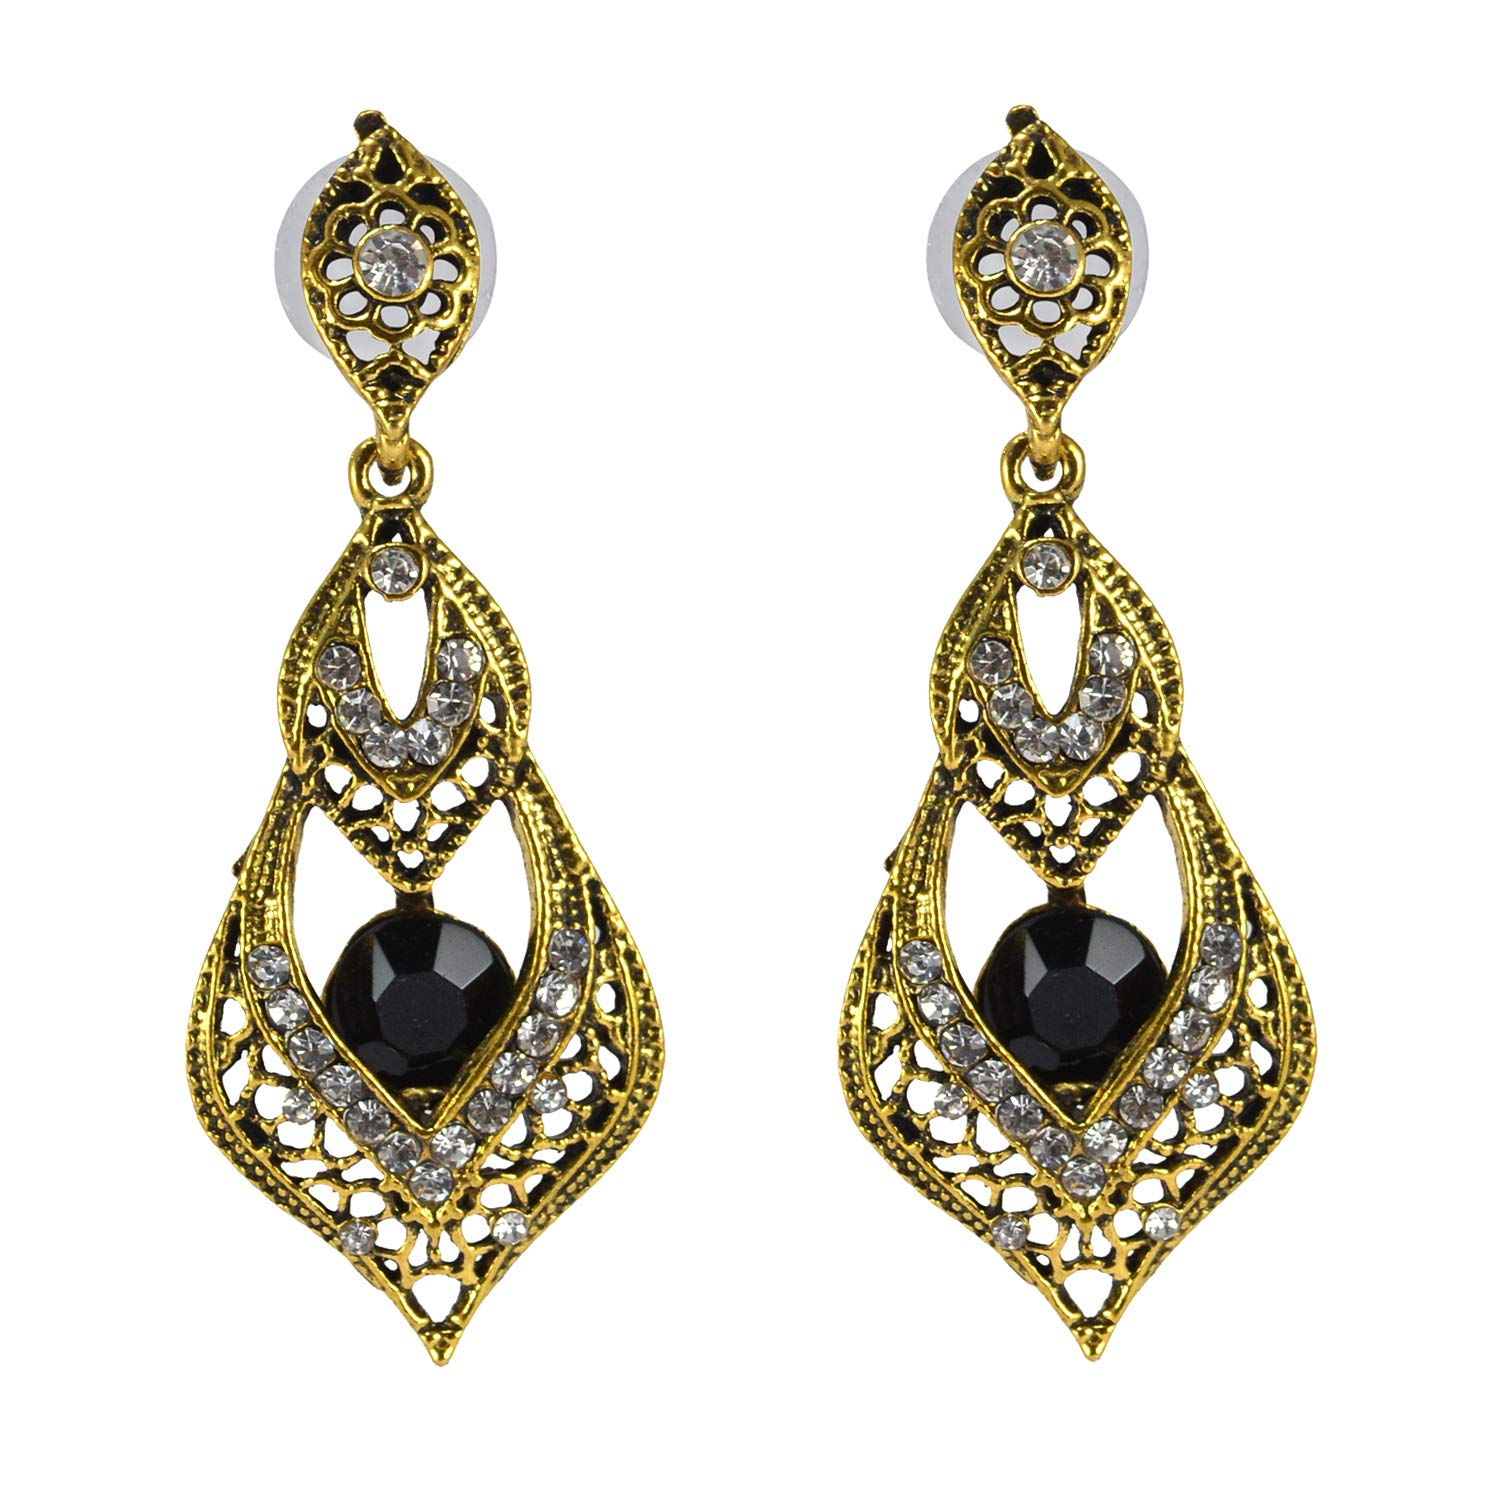 Saamarth Impex Black Onyx /& Cubic Zircon Gold Plated Dangle Earring PG-155660